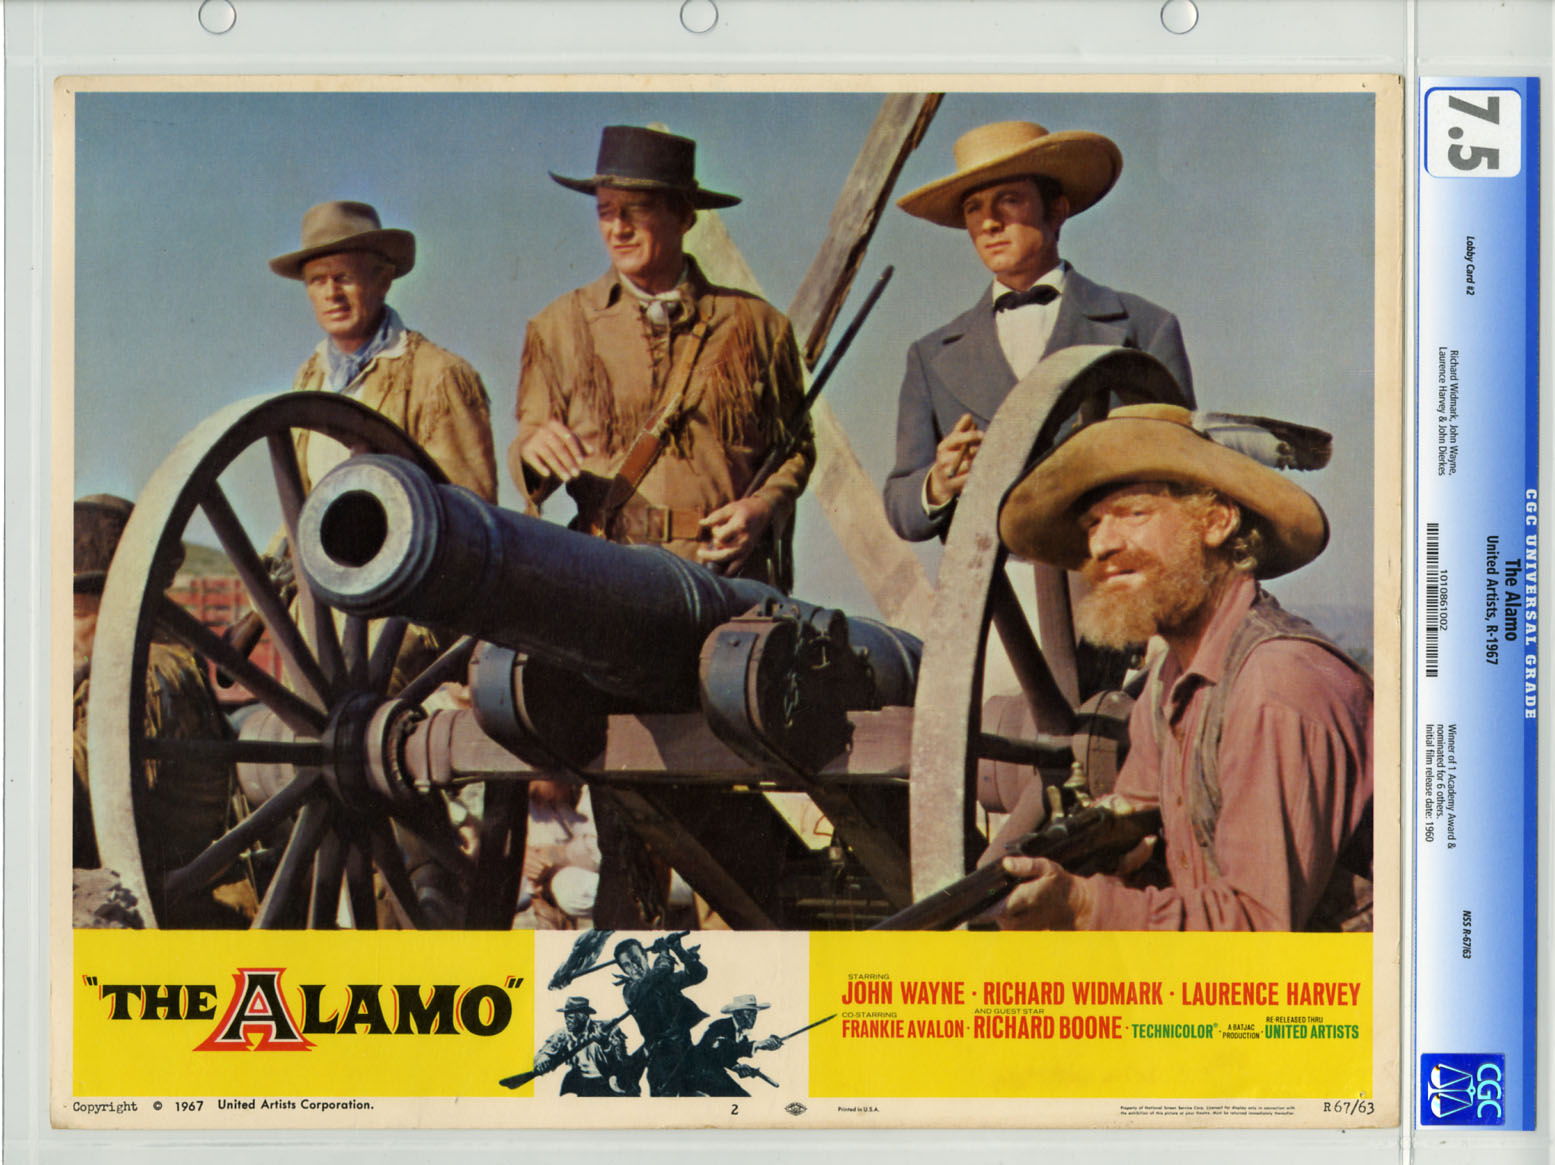 Image result for images of john wayne movie the alamo